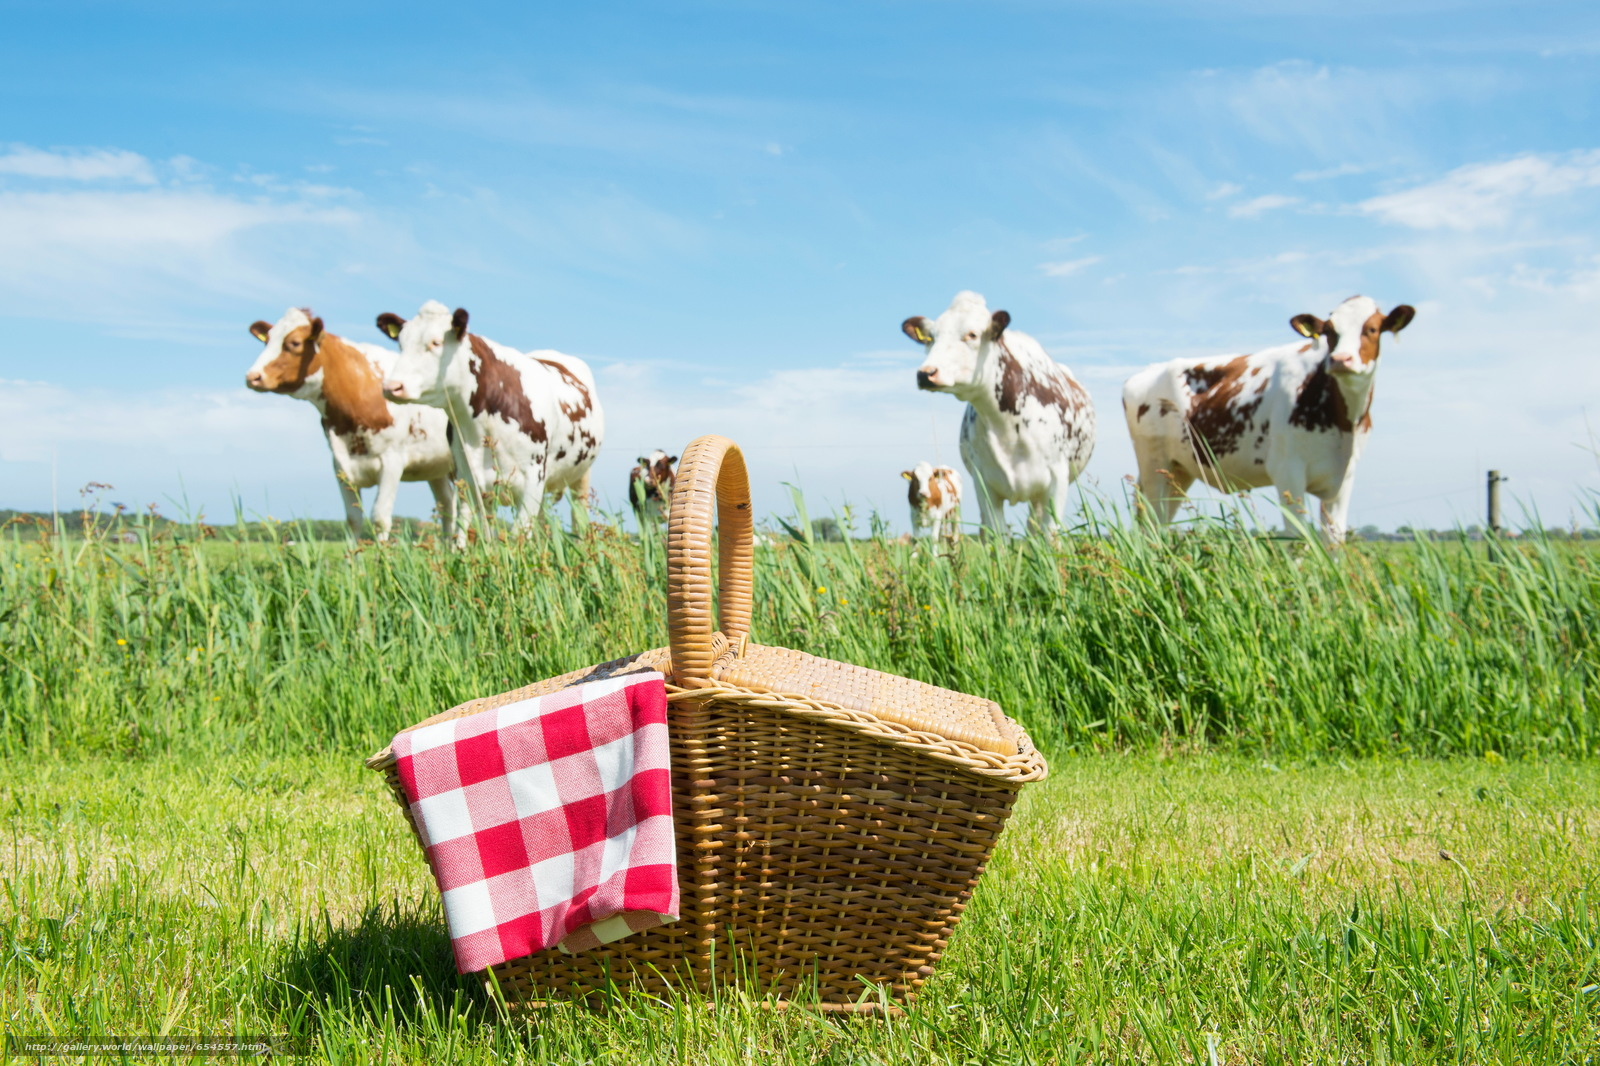 Download wallpaper cow,  COW,  bulls,  nature free desktop wallpaper in the resolution 6000x3999 — picture №654557